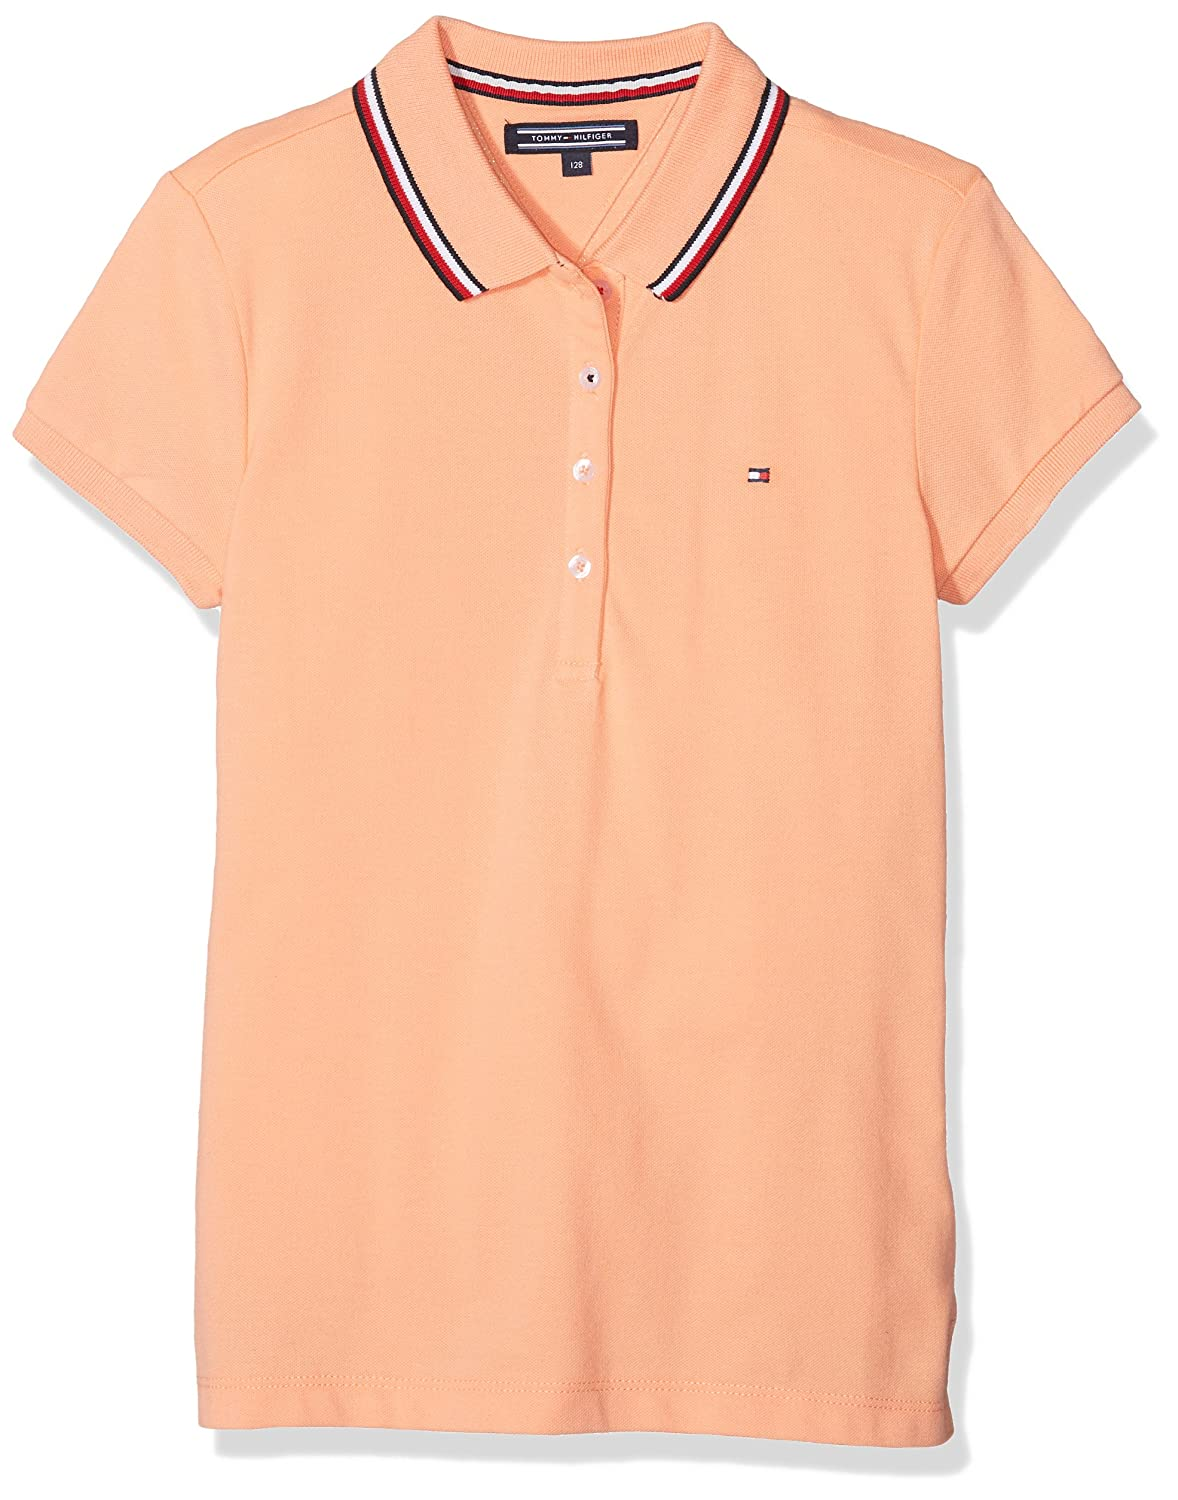 Tommy Hilfiger AME Sweet Polo S/S, Bambina KG0KG03391